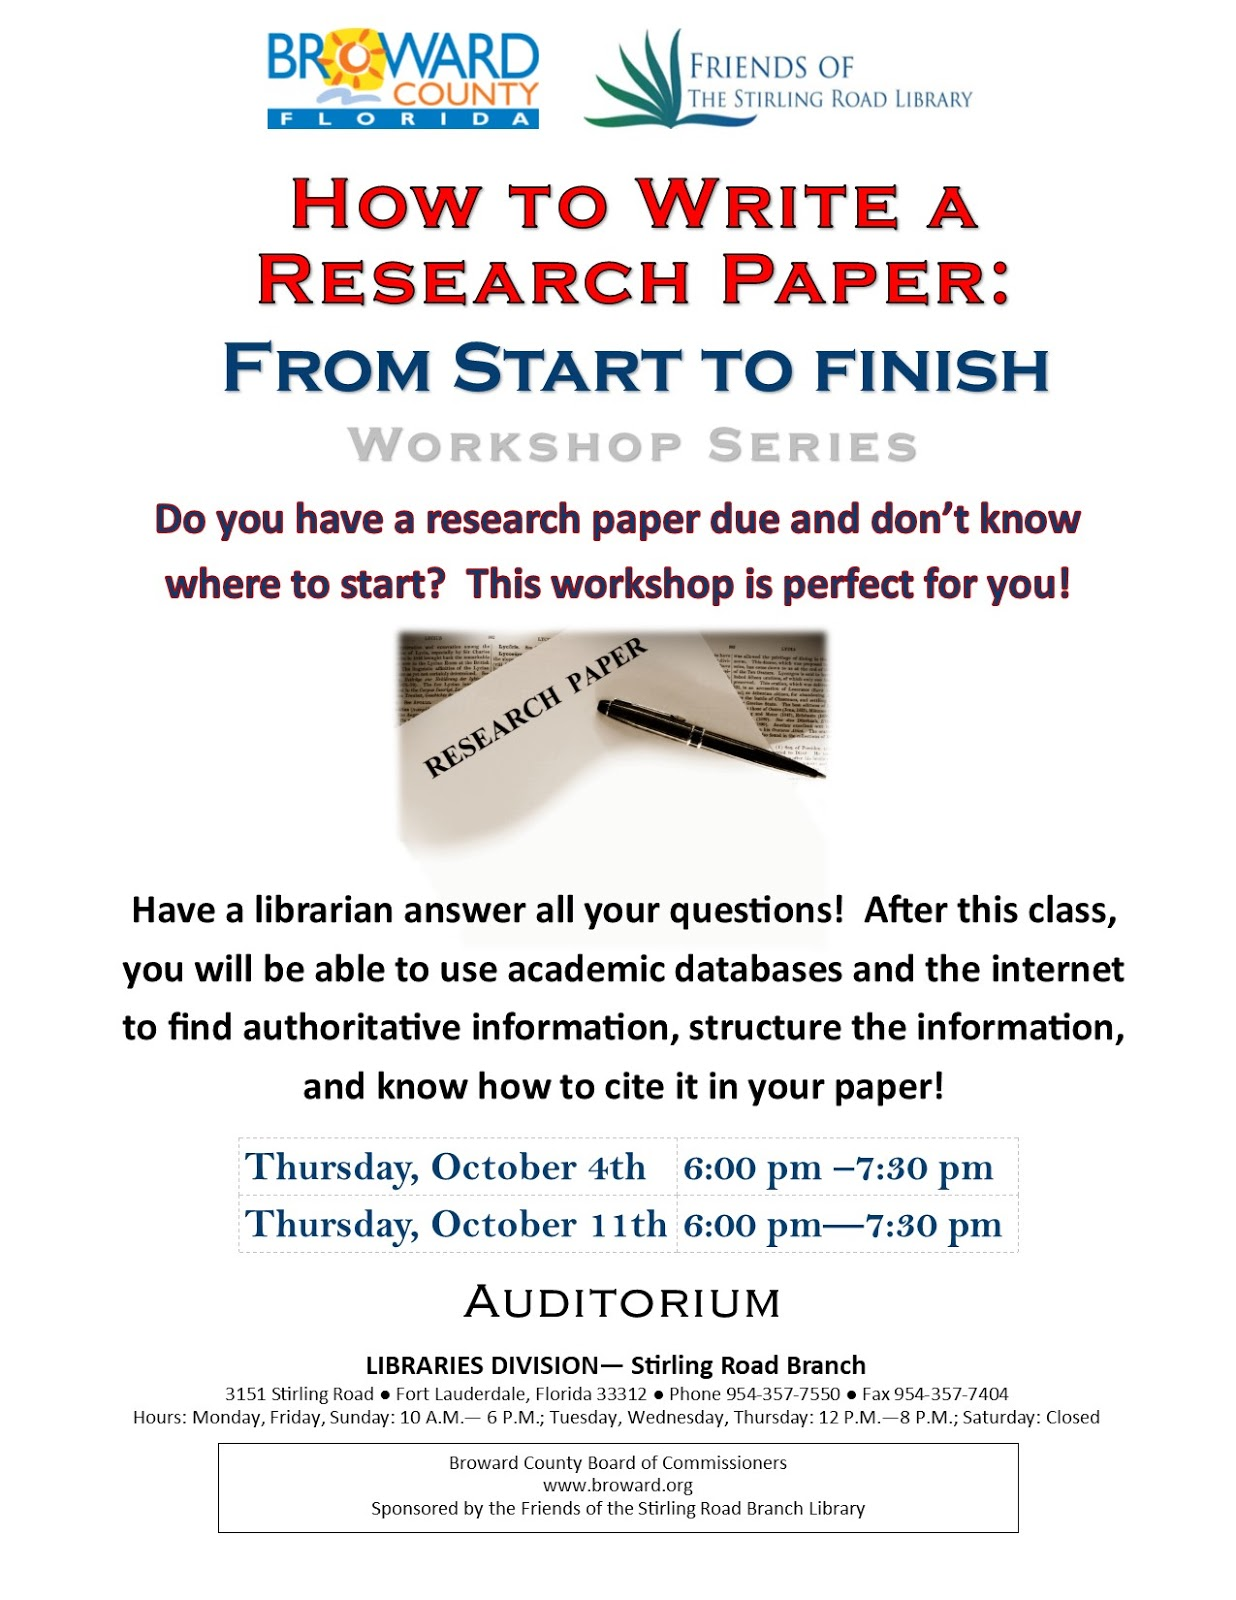 014 How To Write Research Paper Frightening Abstract For Sample Proposal A Summary Of Your Full